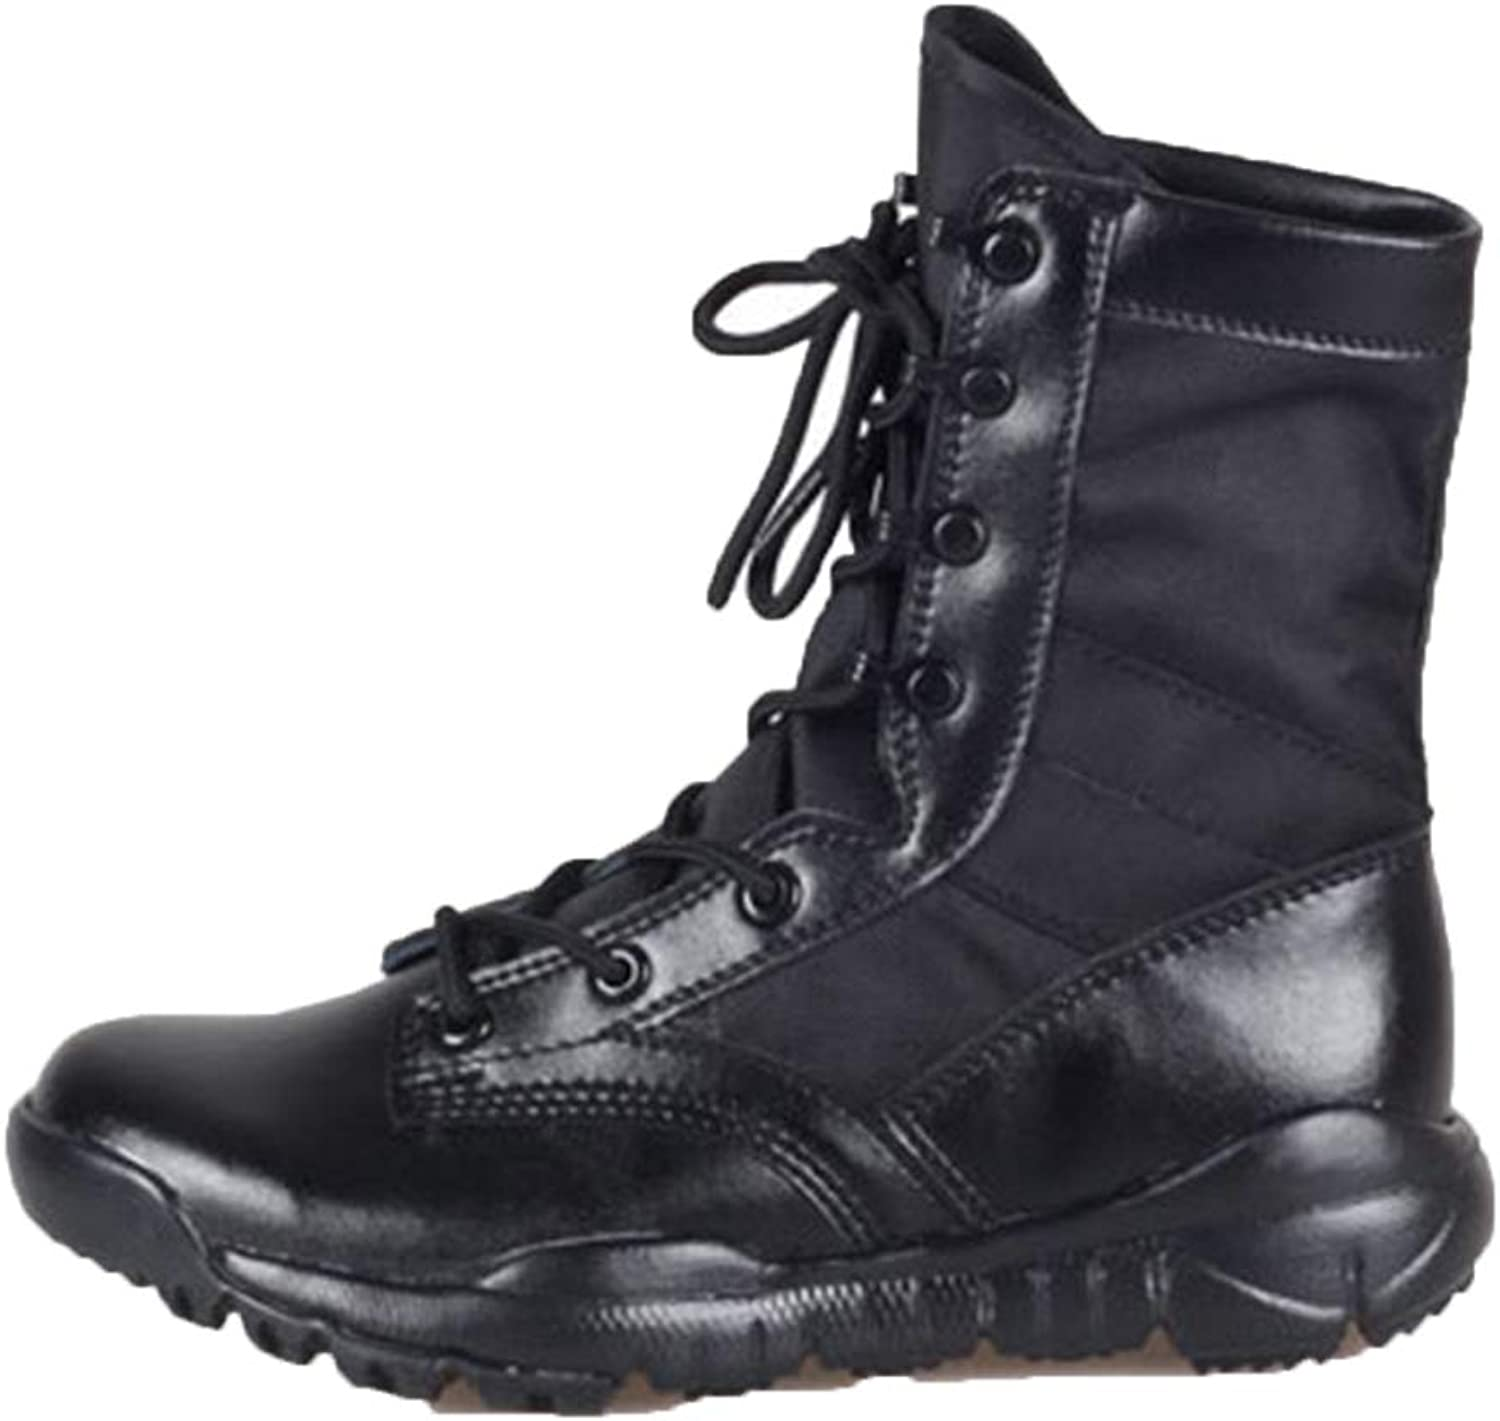 Men's Boots Tactical Military Boots Desert Lightweight Combat Boots High To Help Mountaineering